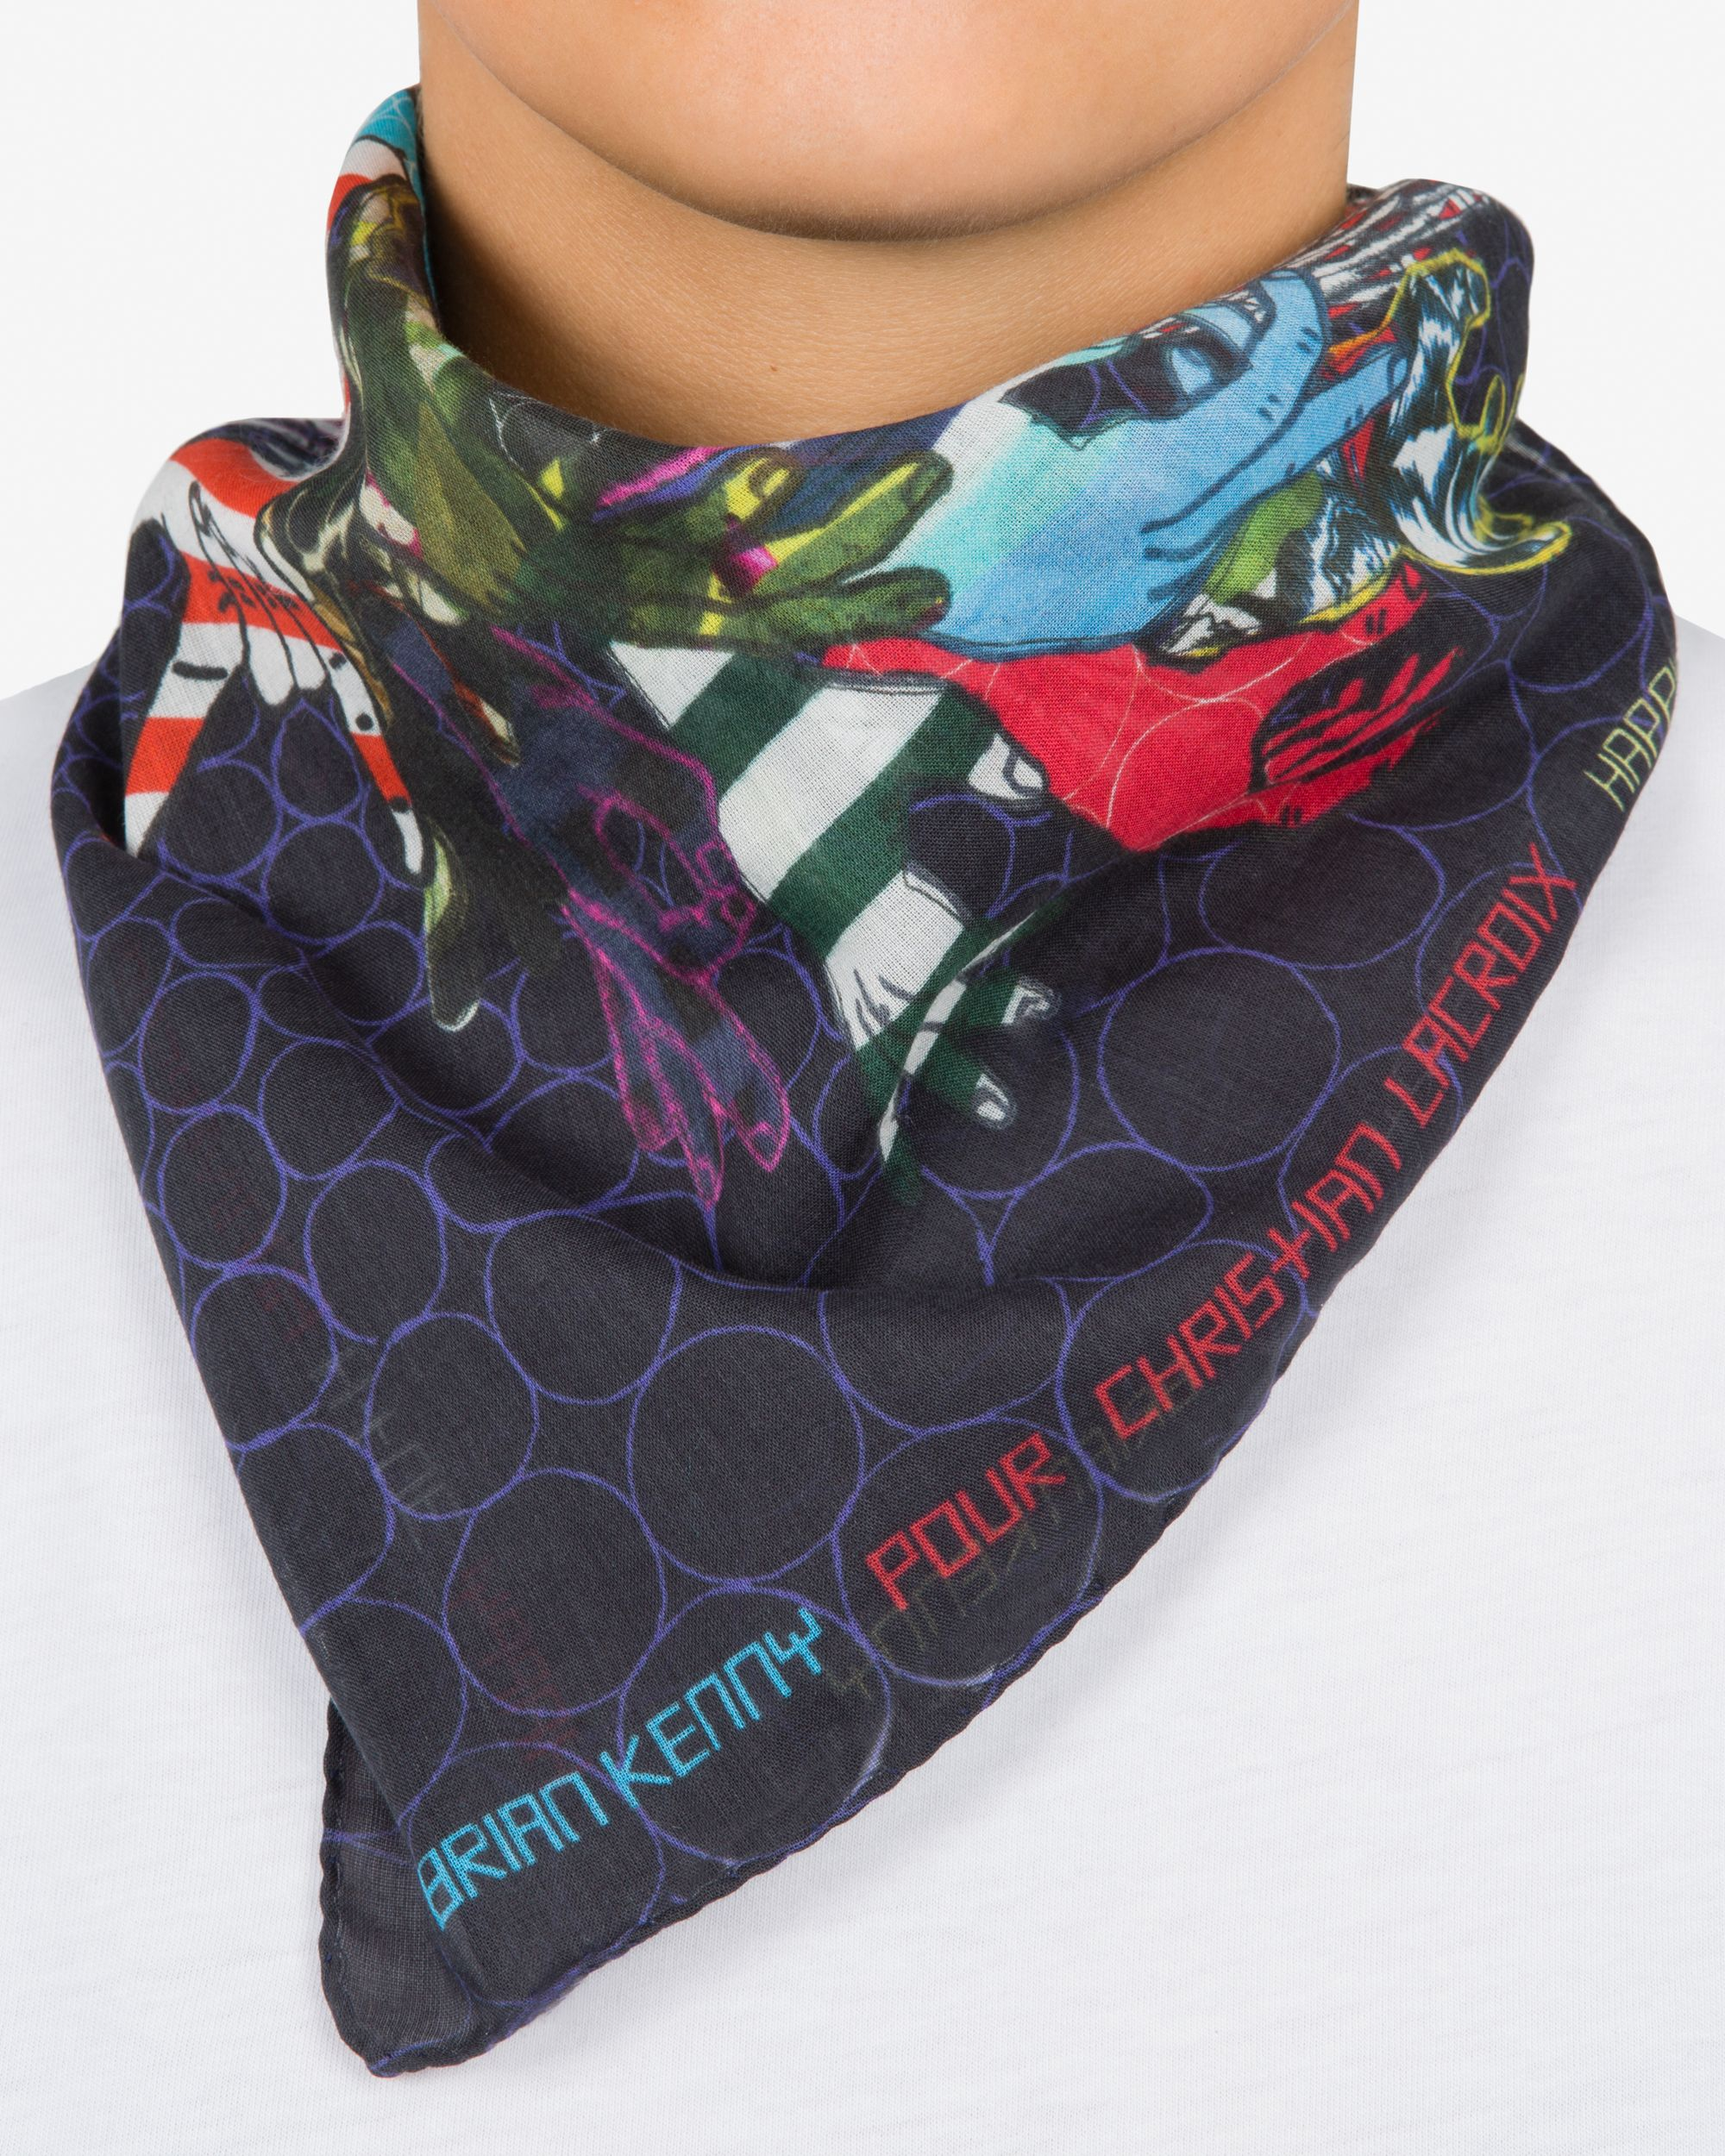 Lacroix_30_ans_CL_x_BK_scarf_together2_5a01c70f3a577.jpg